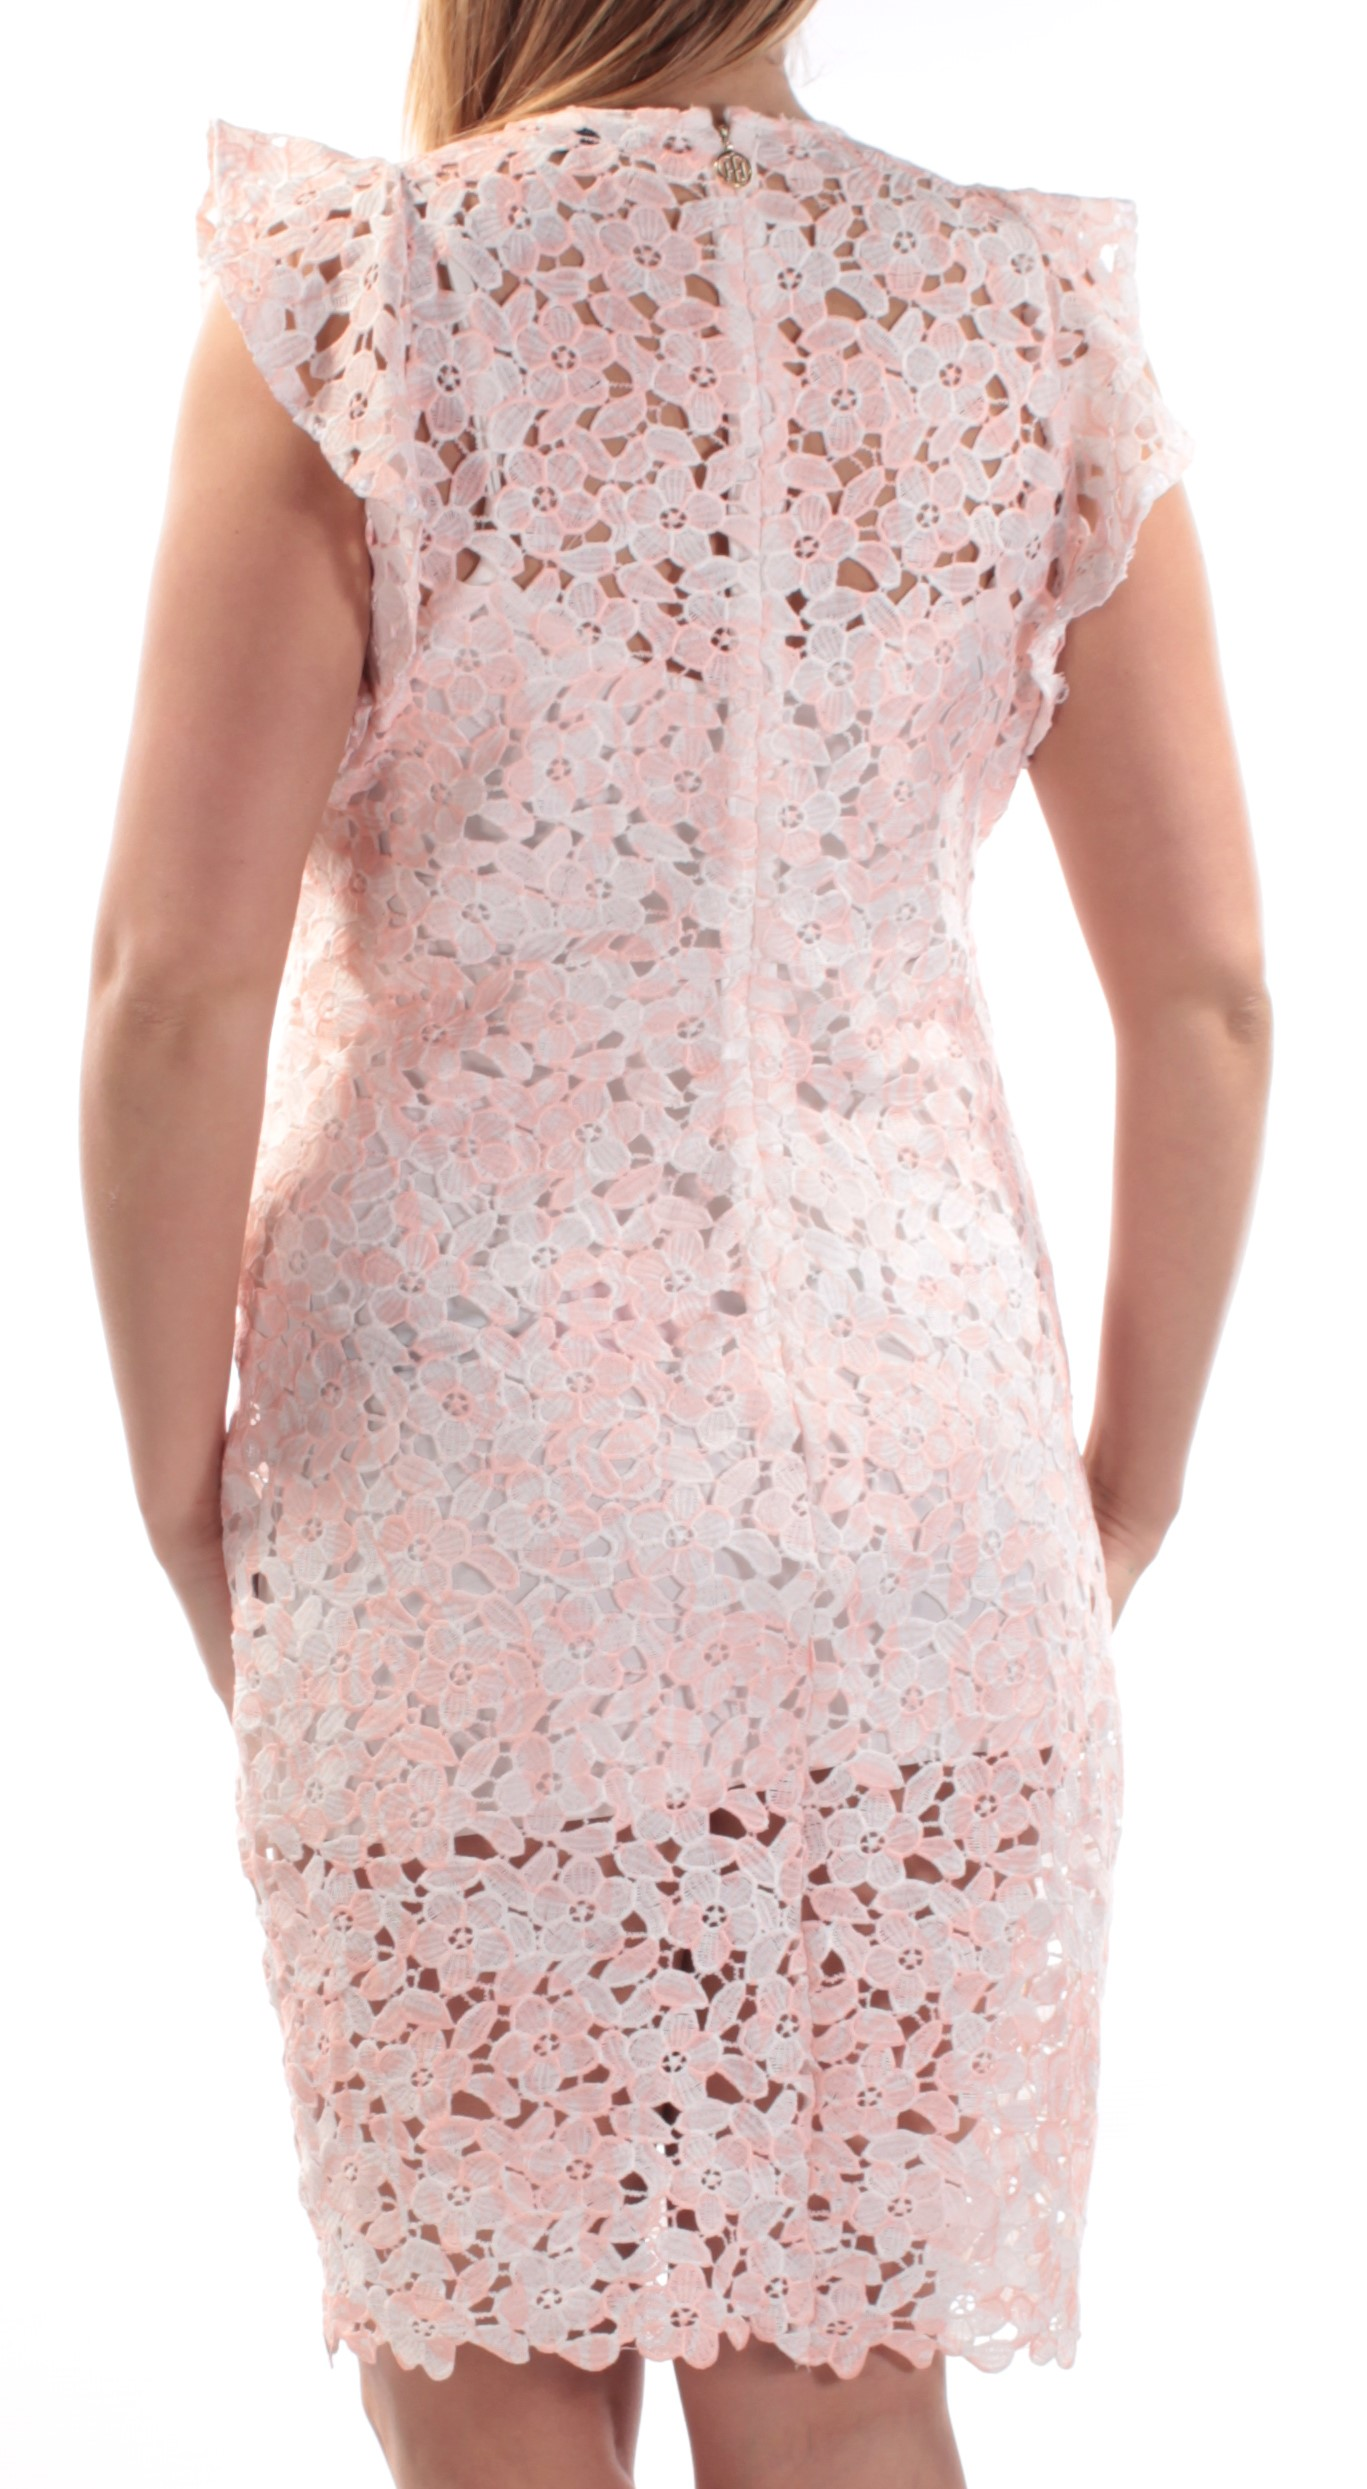 69555862bc7fe TOMMY HILFIGER  130 Womens New 1042 Pink Floral Lace Cap Sleeve ...